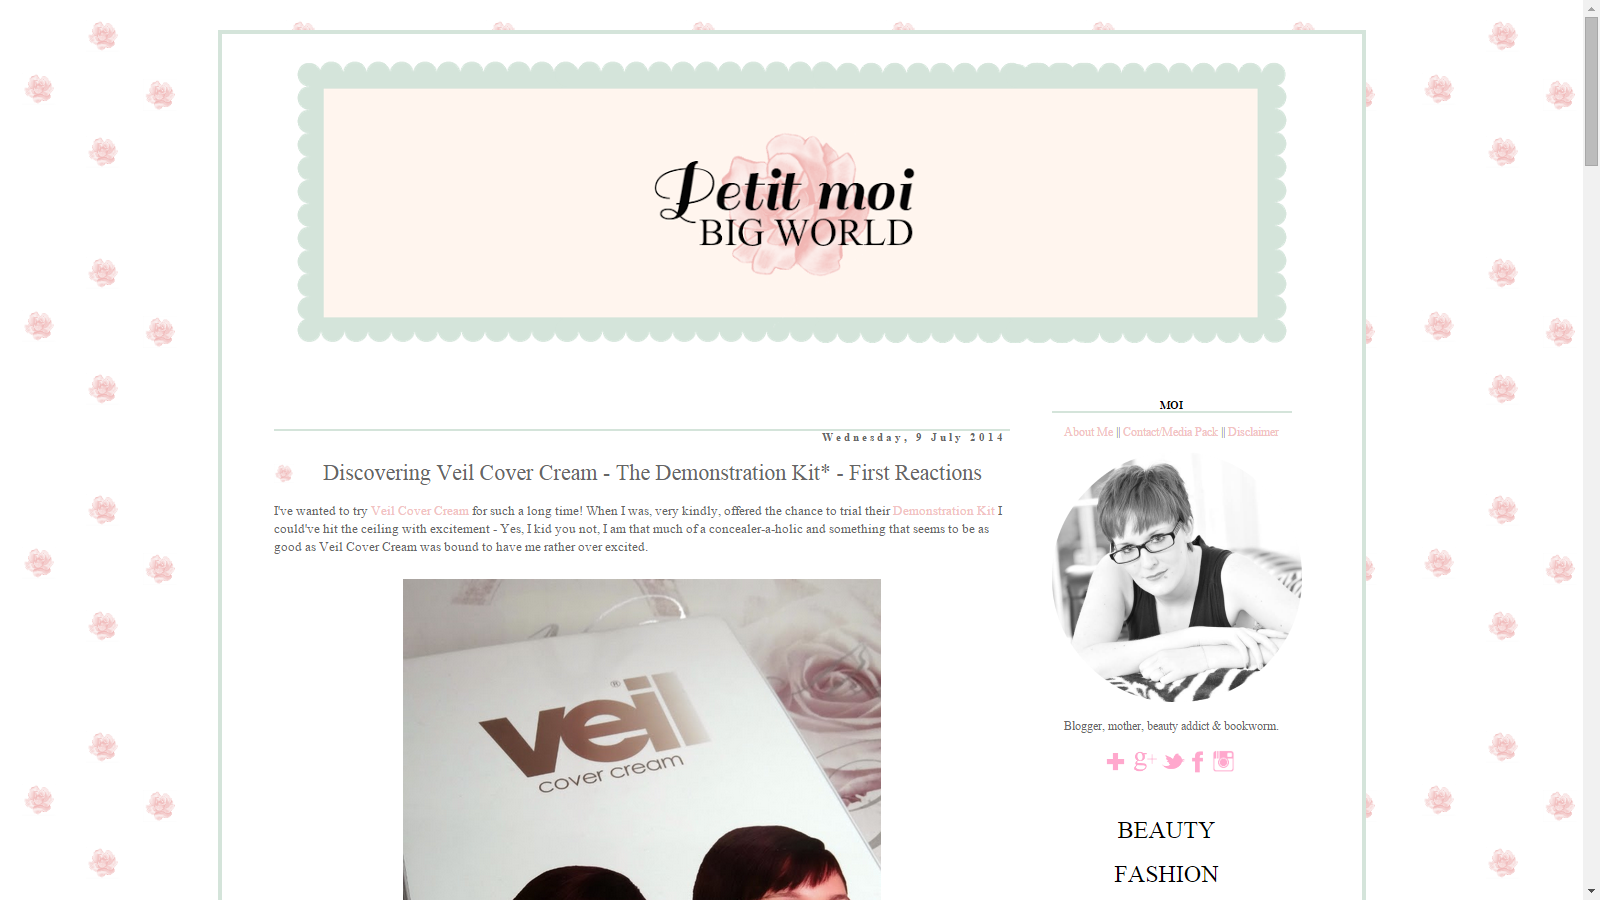 Blast From The Past: Veil Cover Cream Featured On Petit Moi Big World